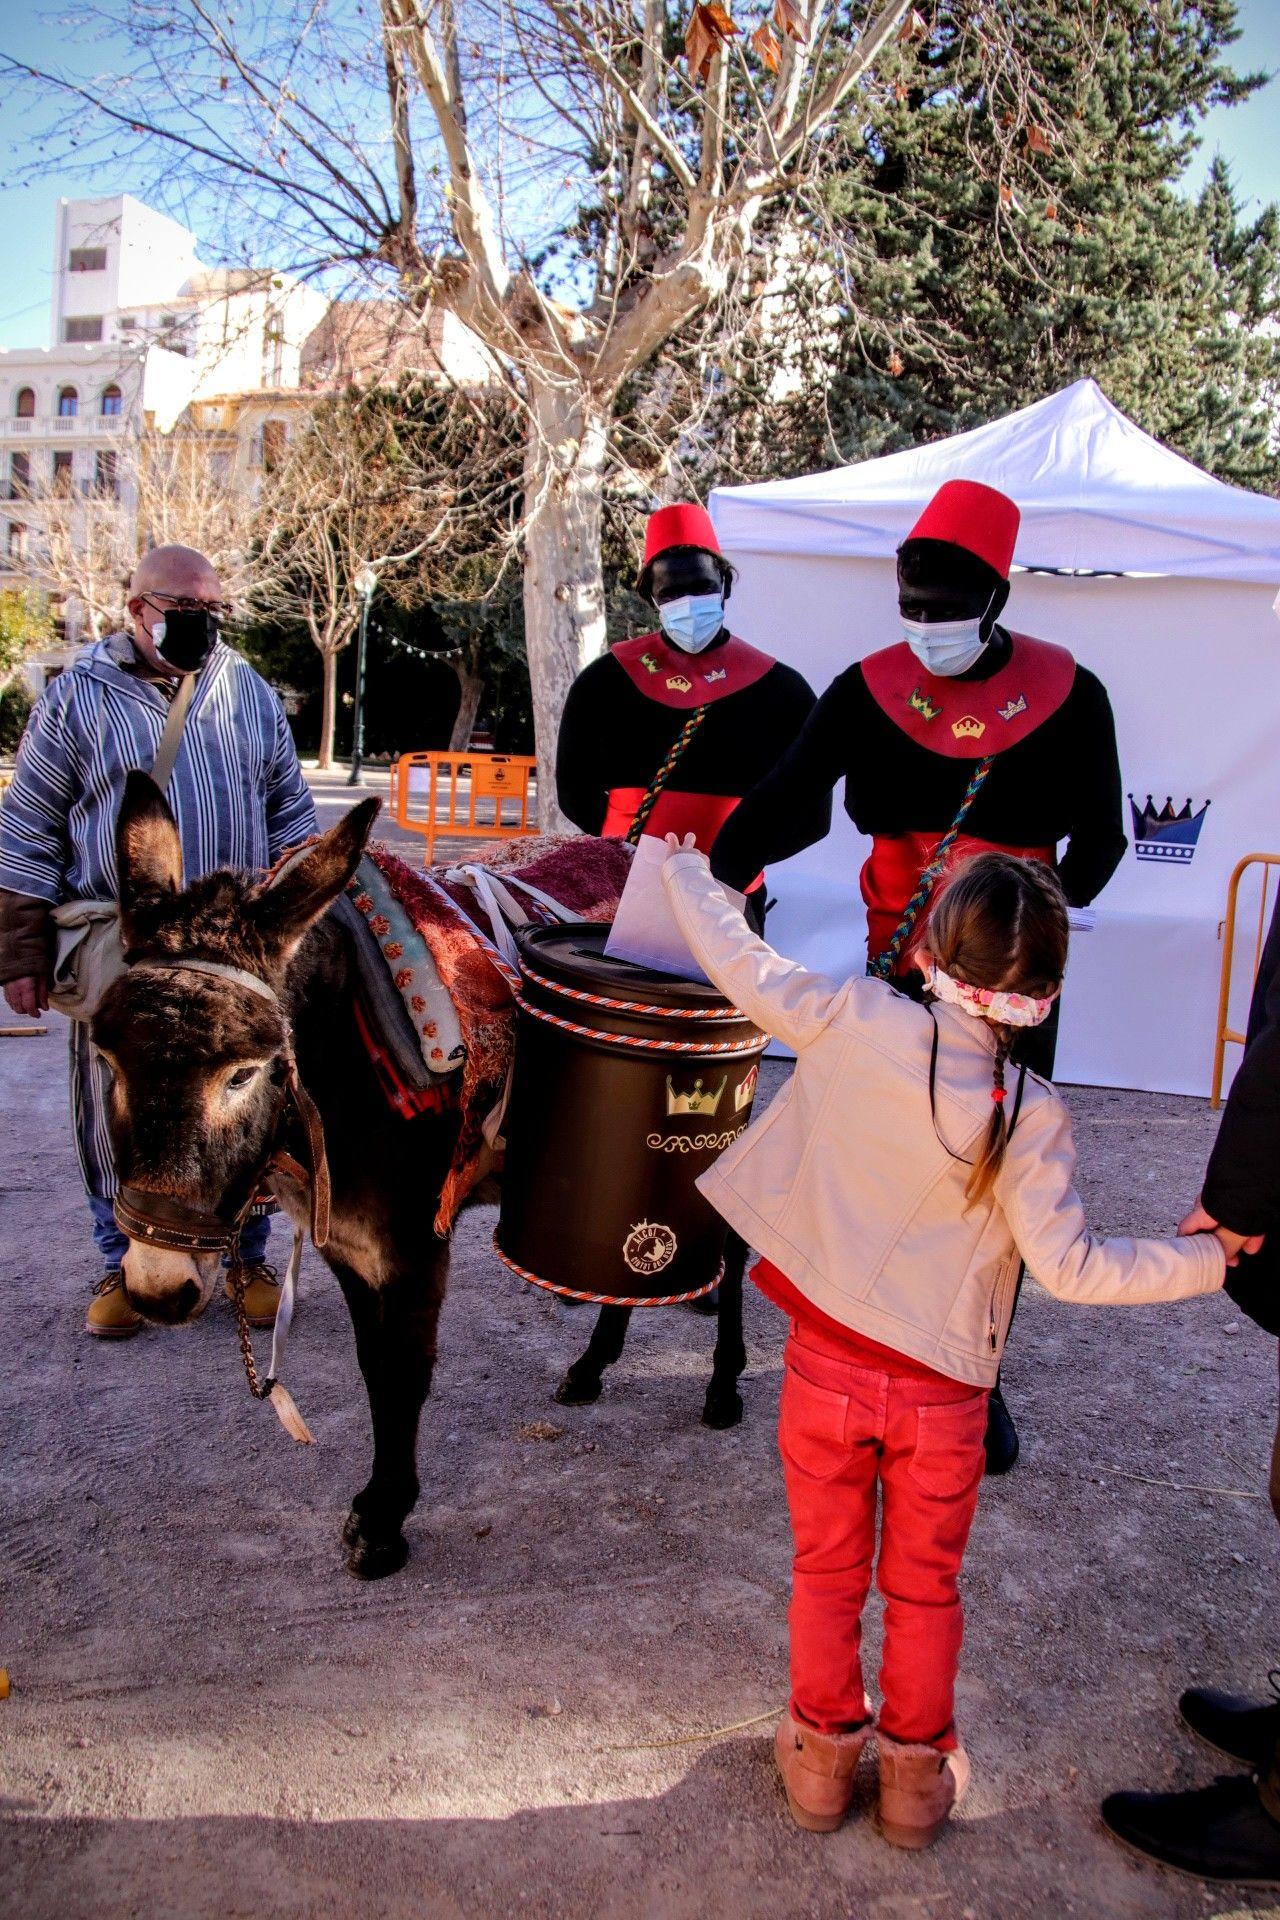 The pages collect the letters for the Magi in Alcoy